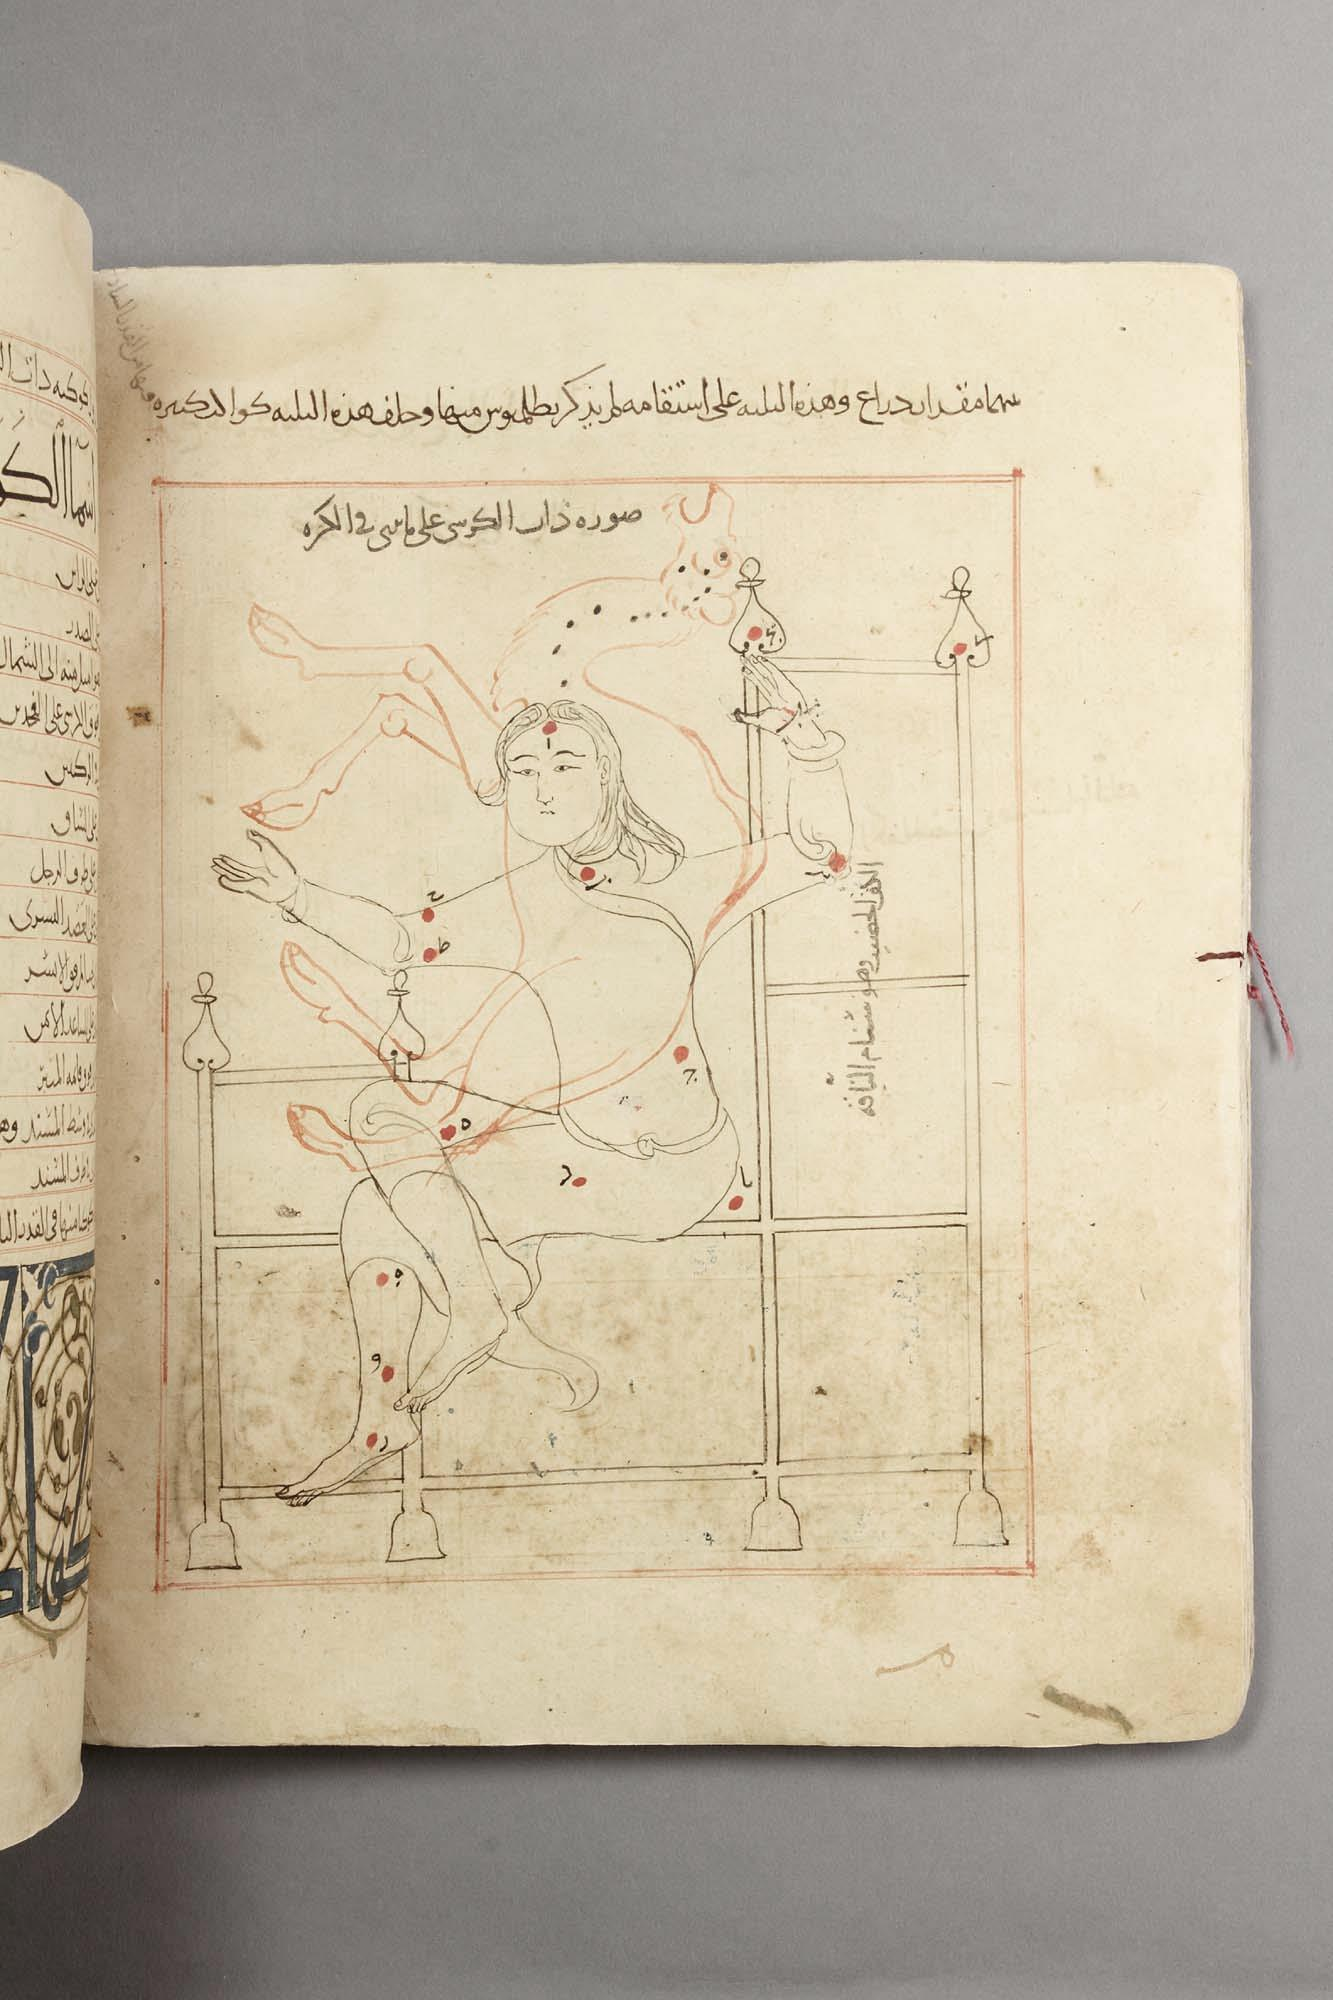 Projects The Conveyor Camel Washing Machine Wiring Diagram Constellation Of Cassiopeia Overlaid With A Bedouin Bodleian Ms